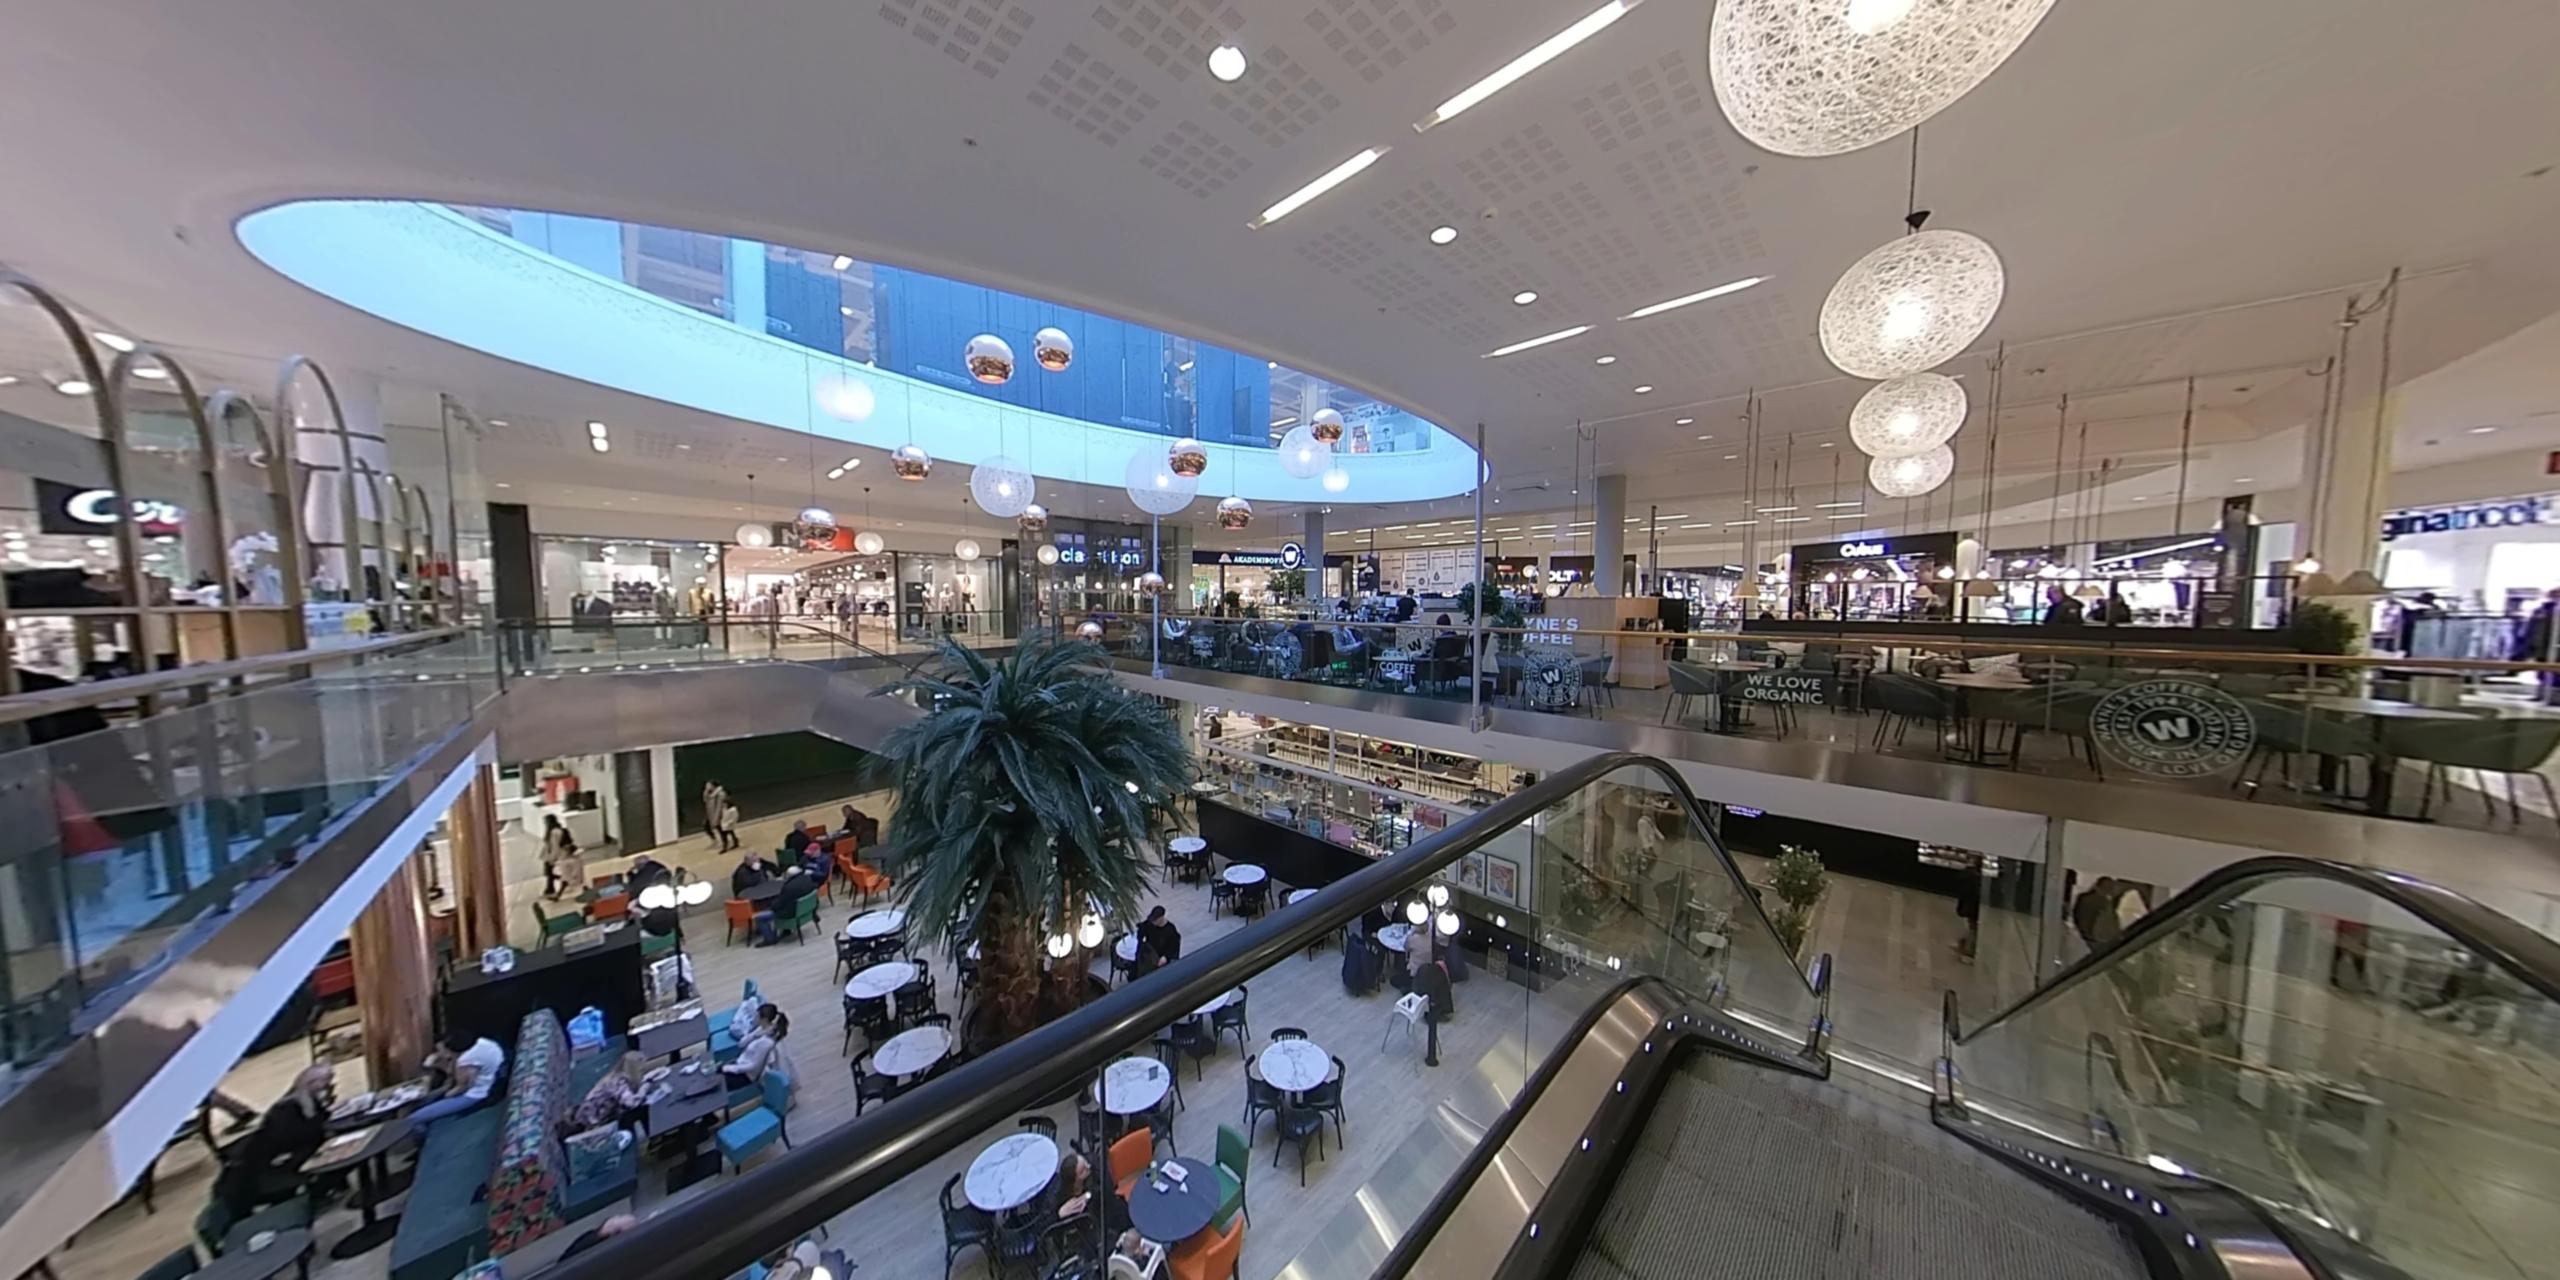 Mitt i City shopping center virtual tour